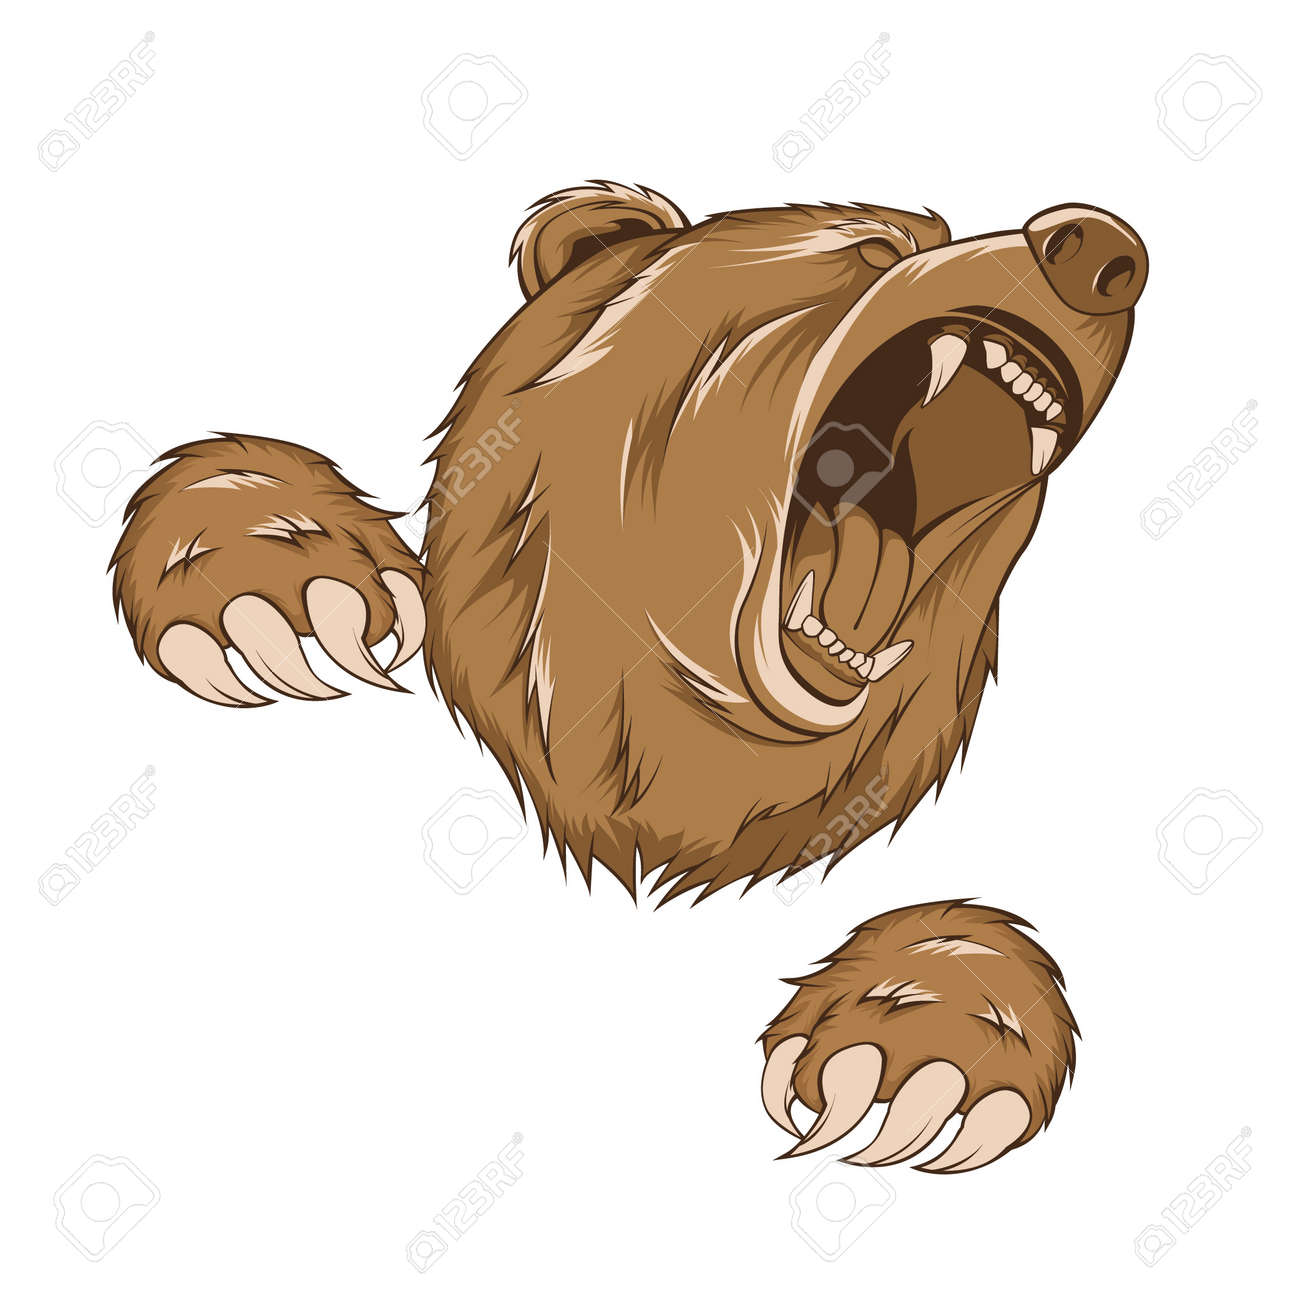 grizzly bear, vector with scratch pose - 27176769